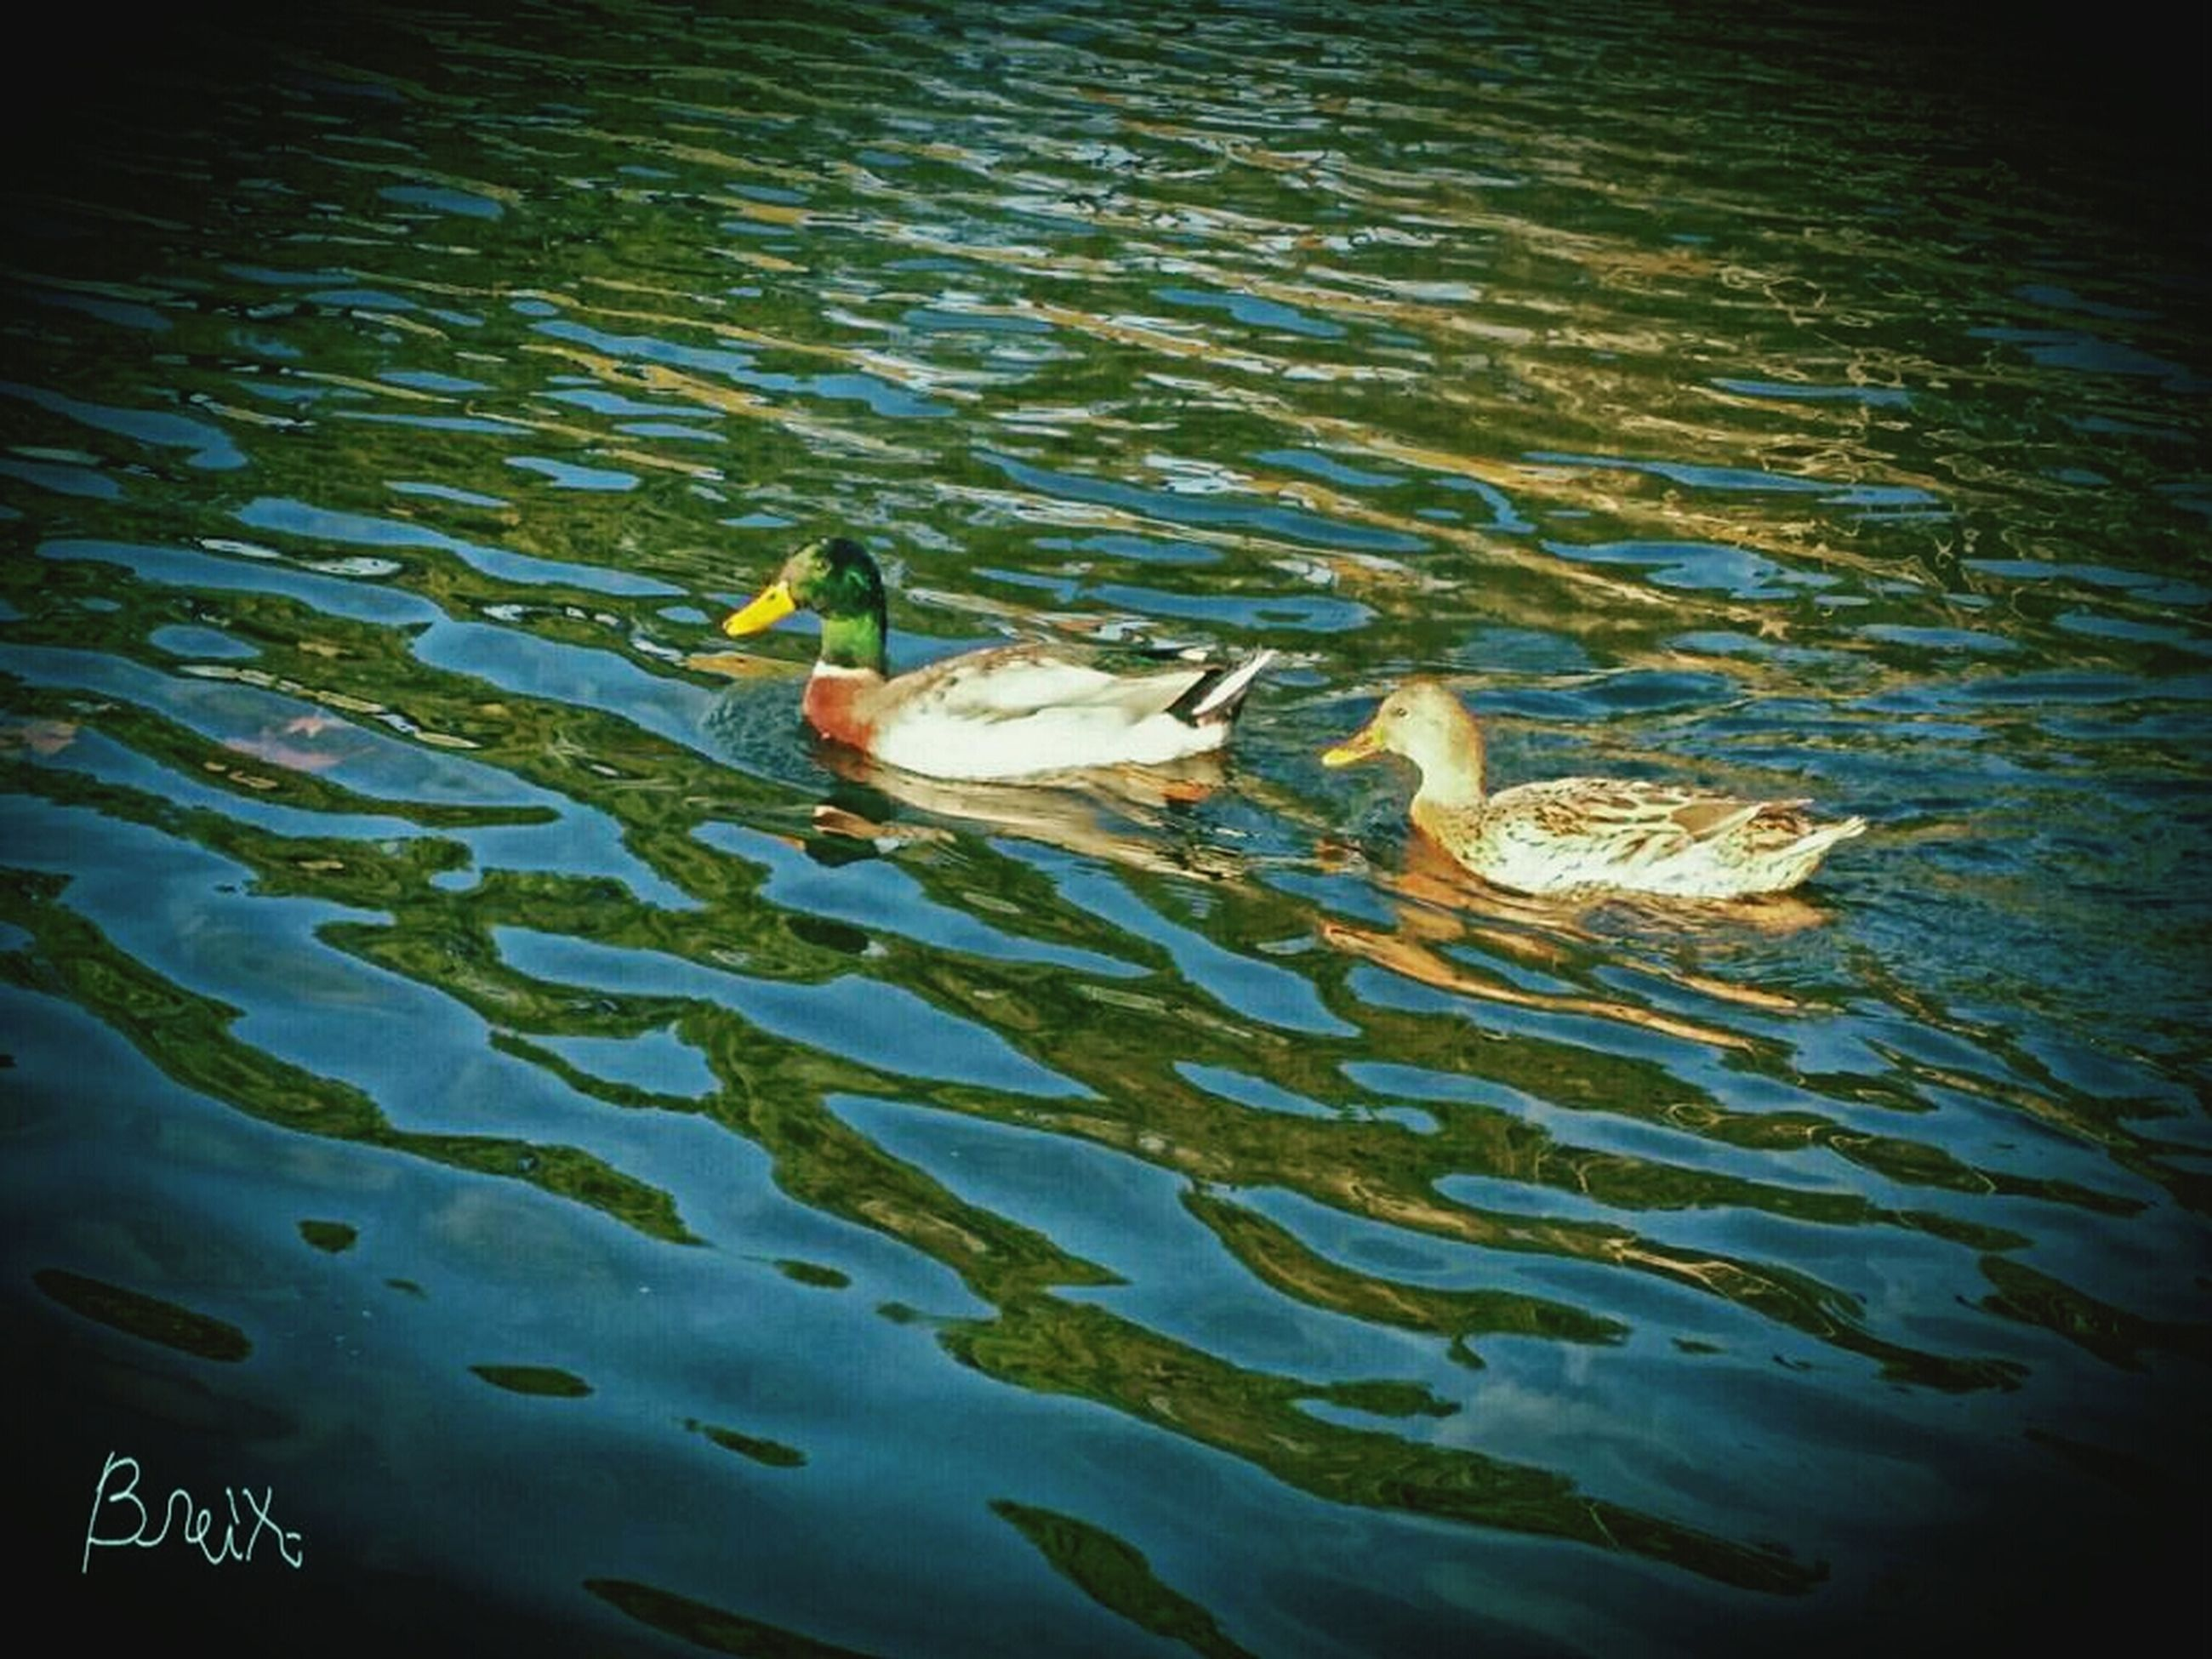 animal themes, animals in the wild, wildlife, water, swimming, one animal, bird, lake, high angle view, waterfront, reflection, duck, two animals, nature, floating on water, water bird, pond, rippled, fish, zoology